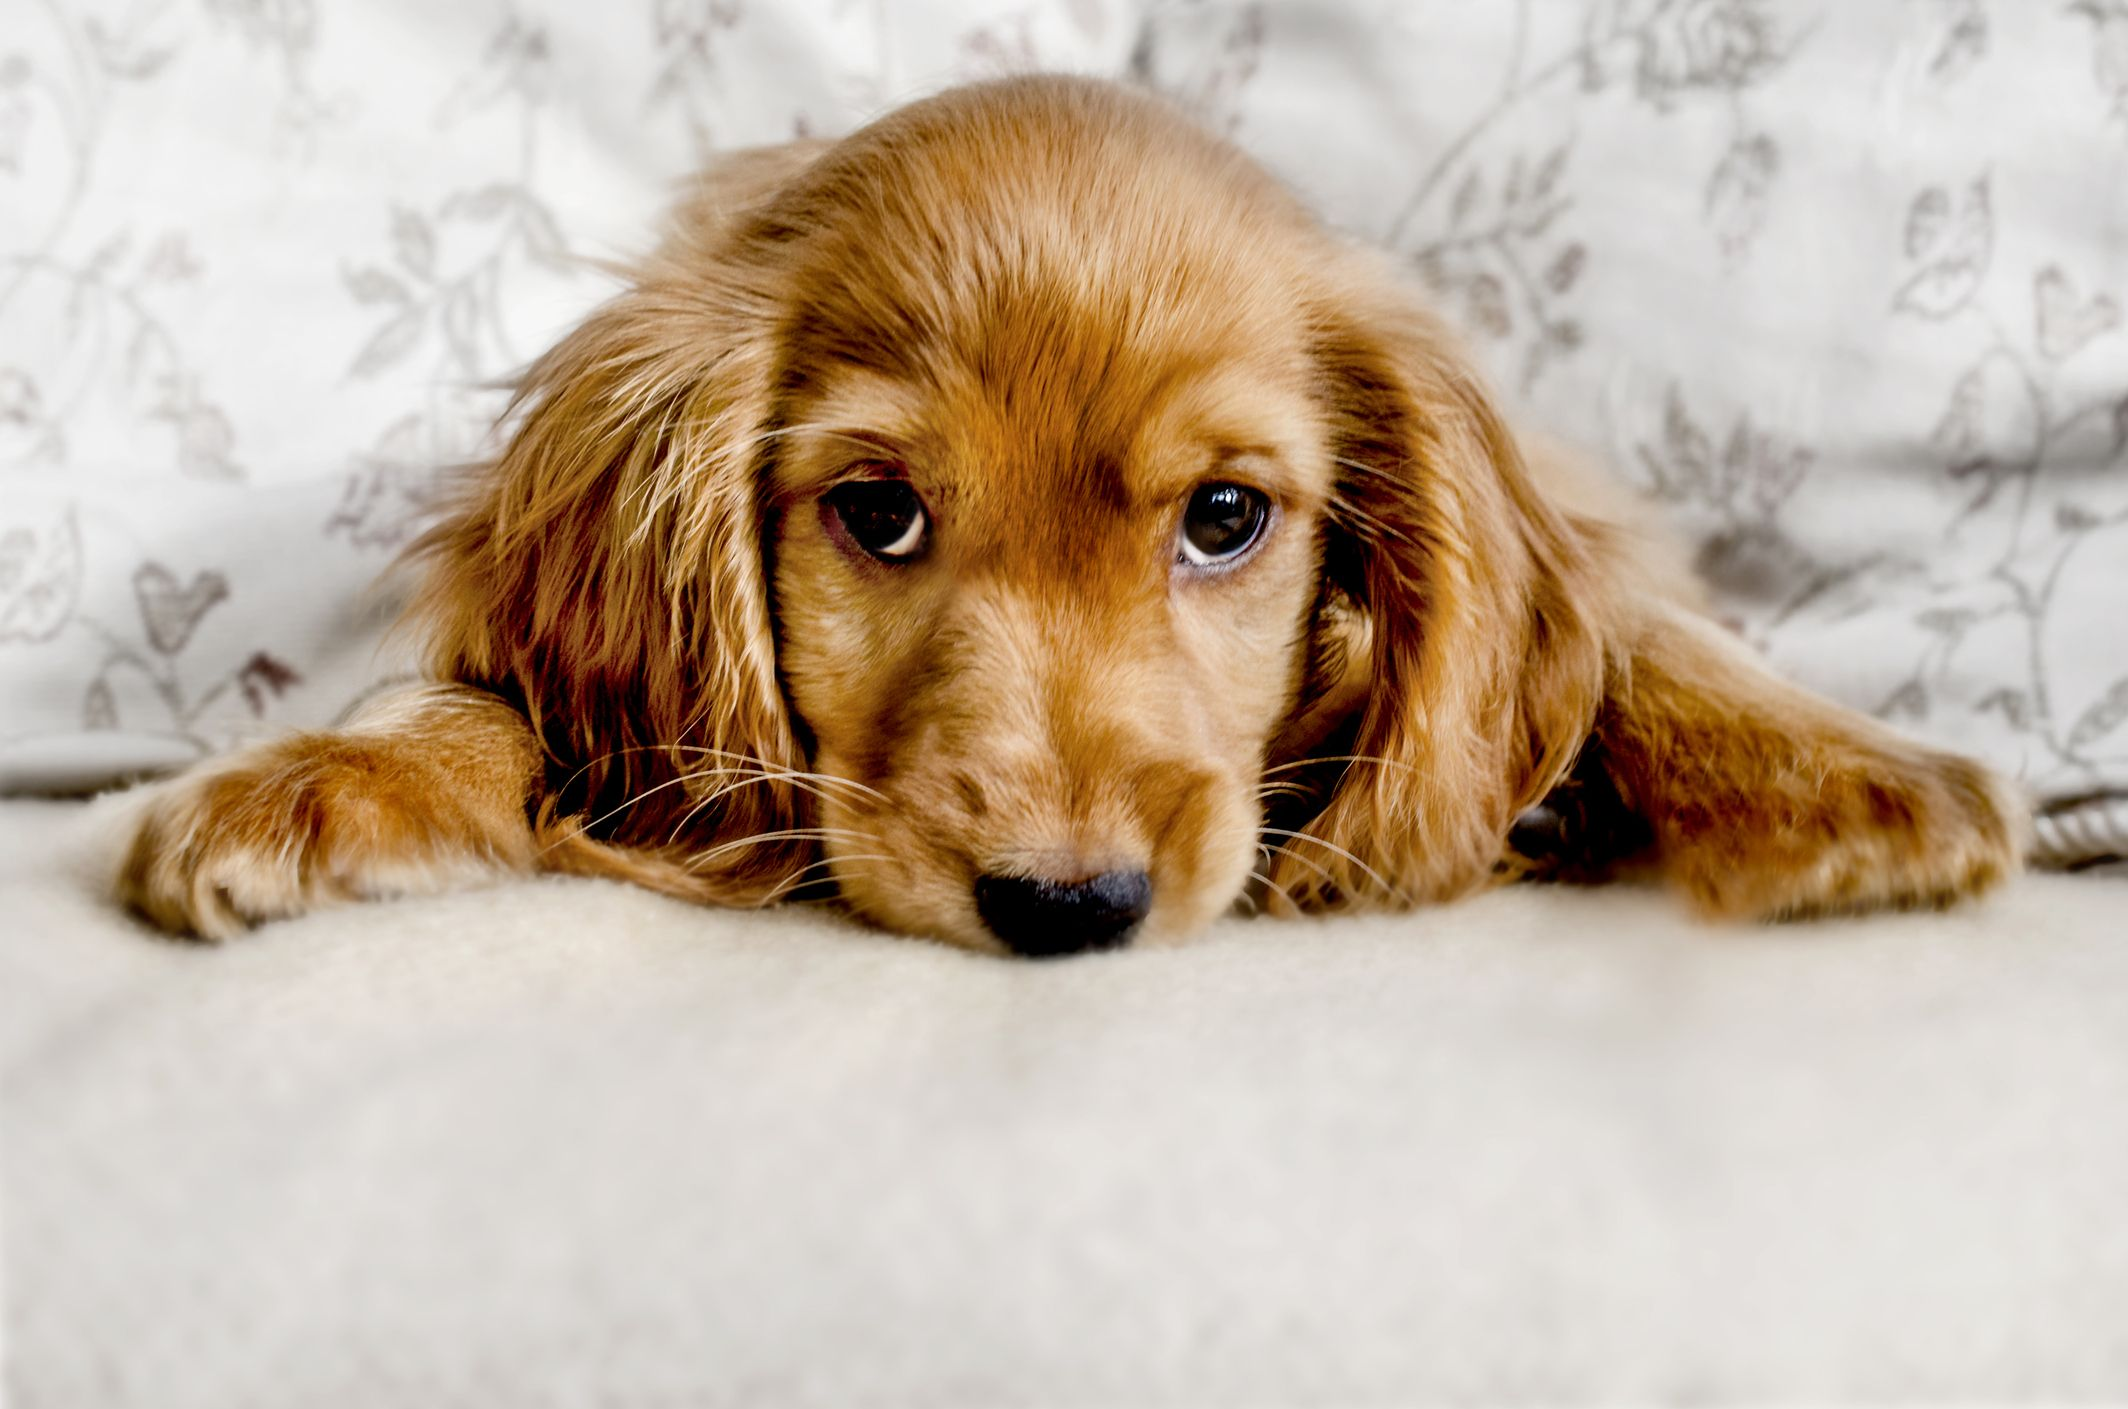 Top 10 things dog owners do when they leave their pet home alone